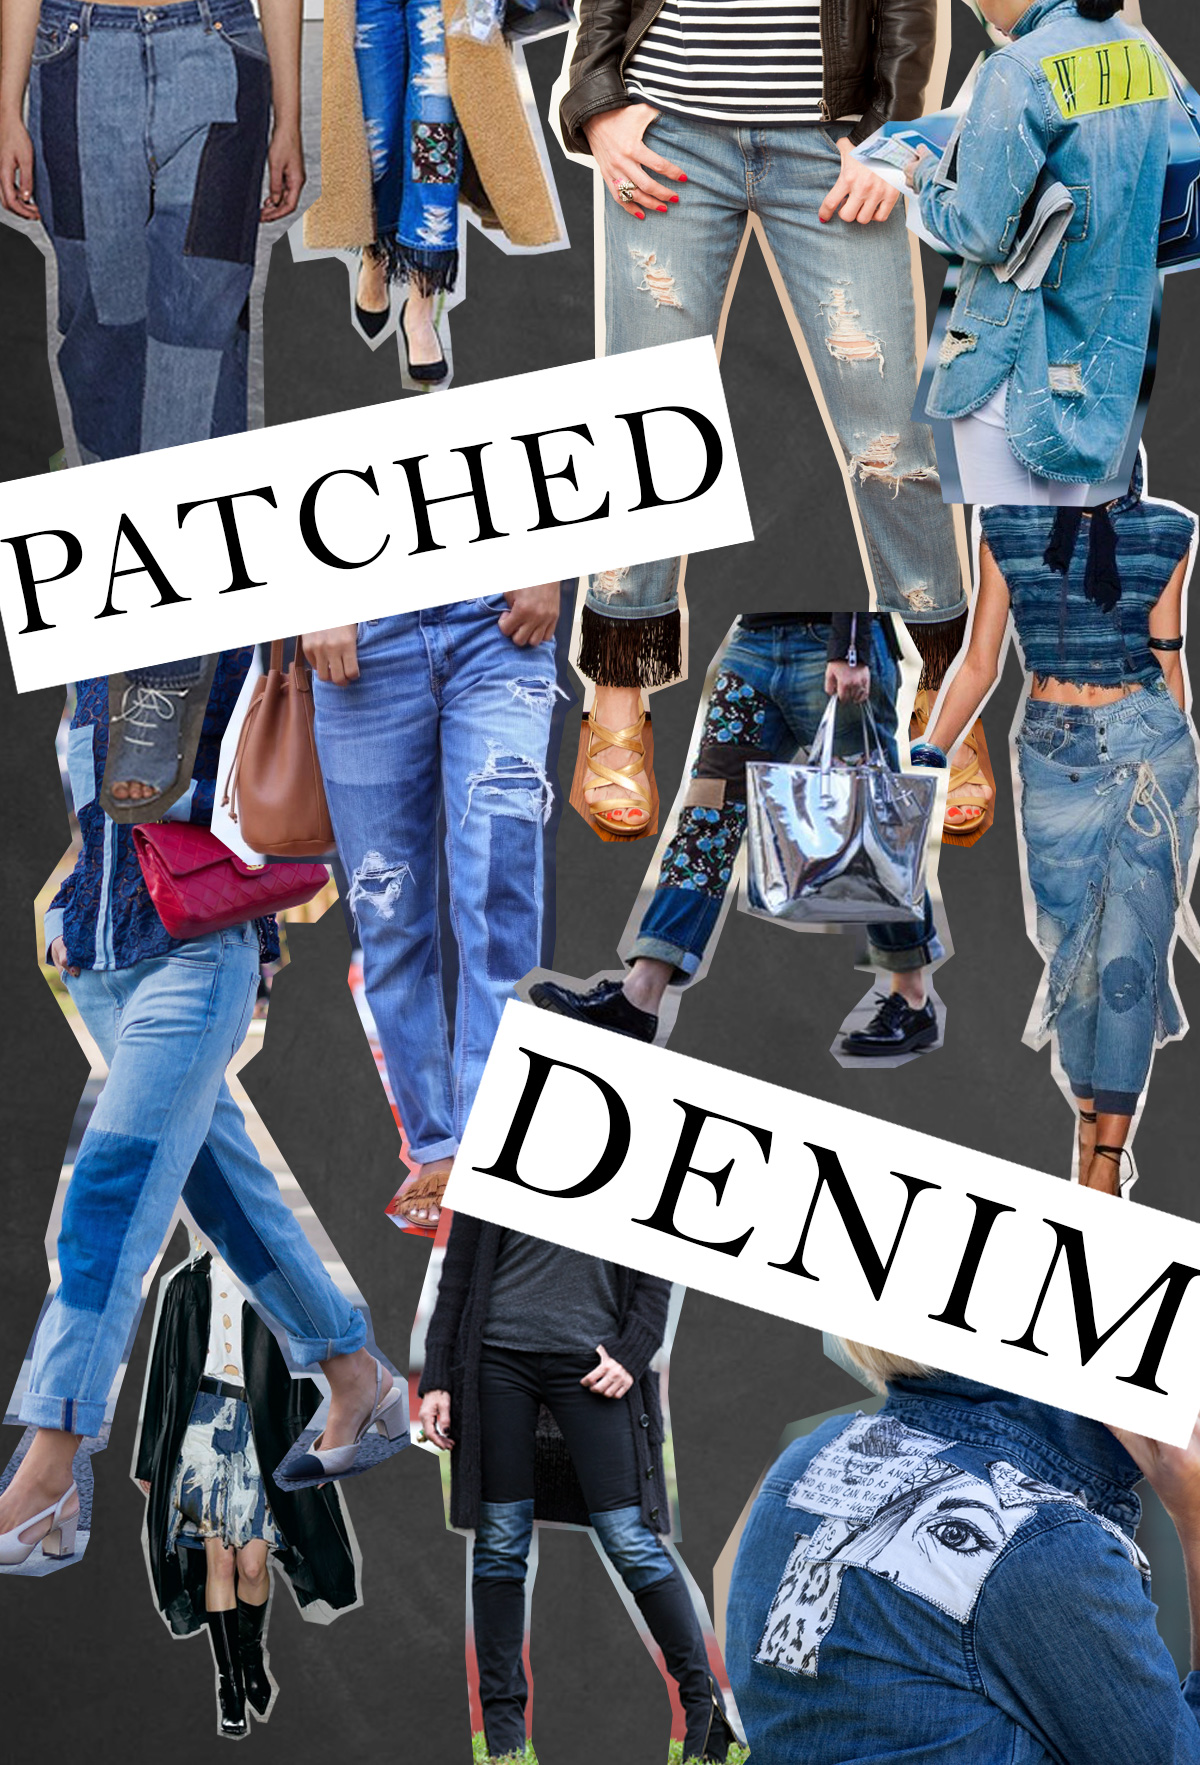 Deconstructed and Patched Denim Trend